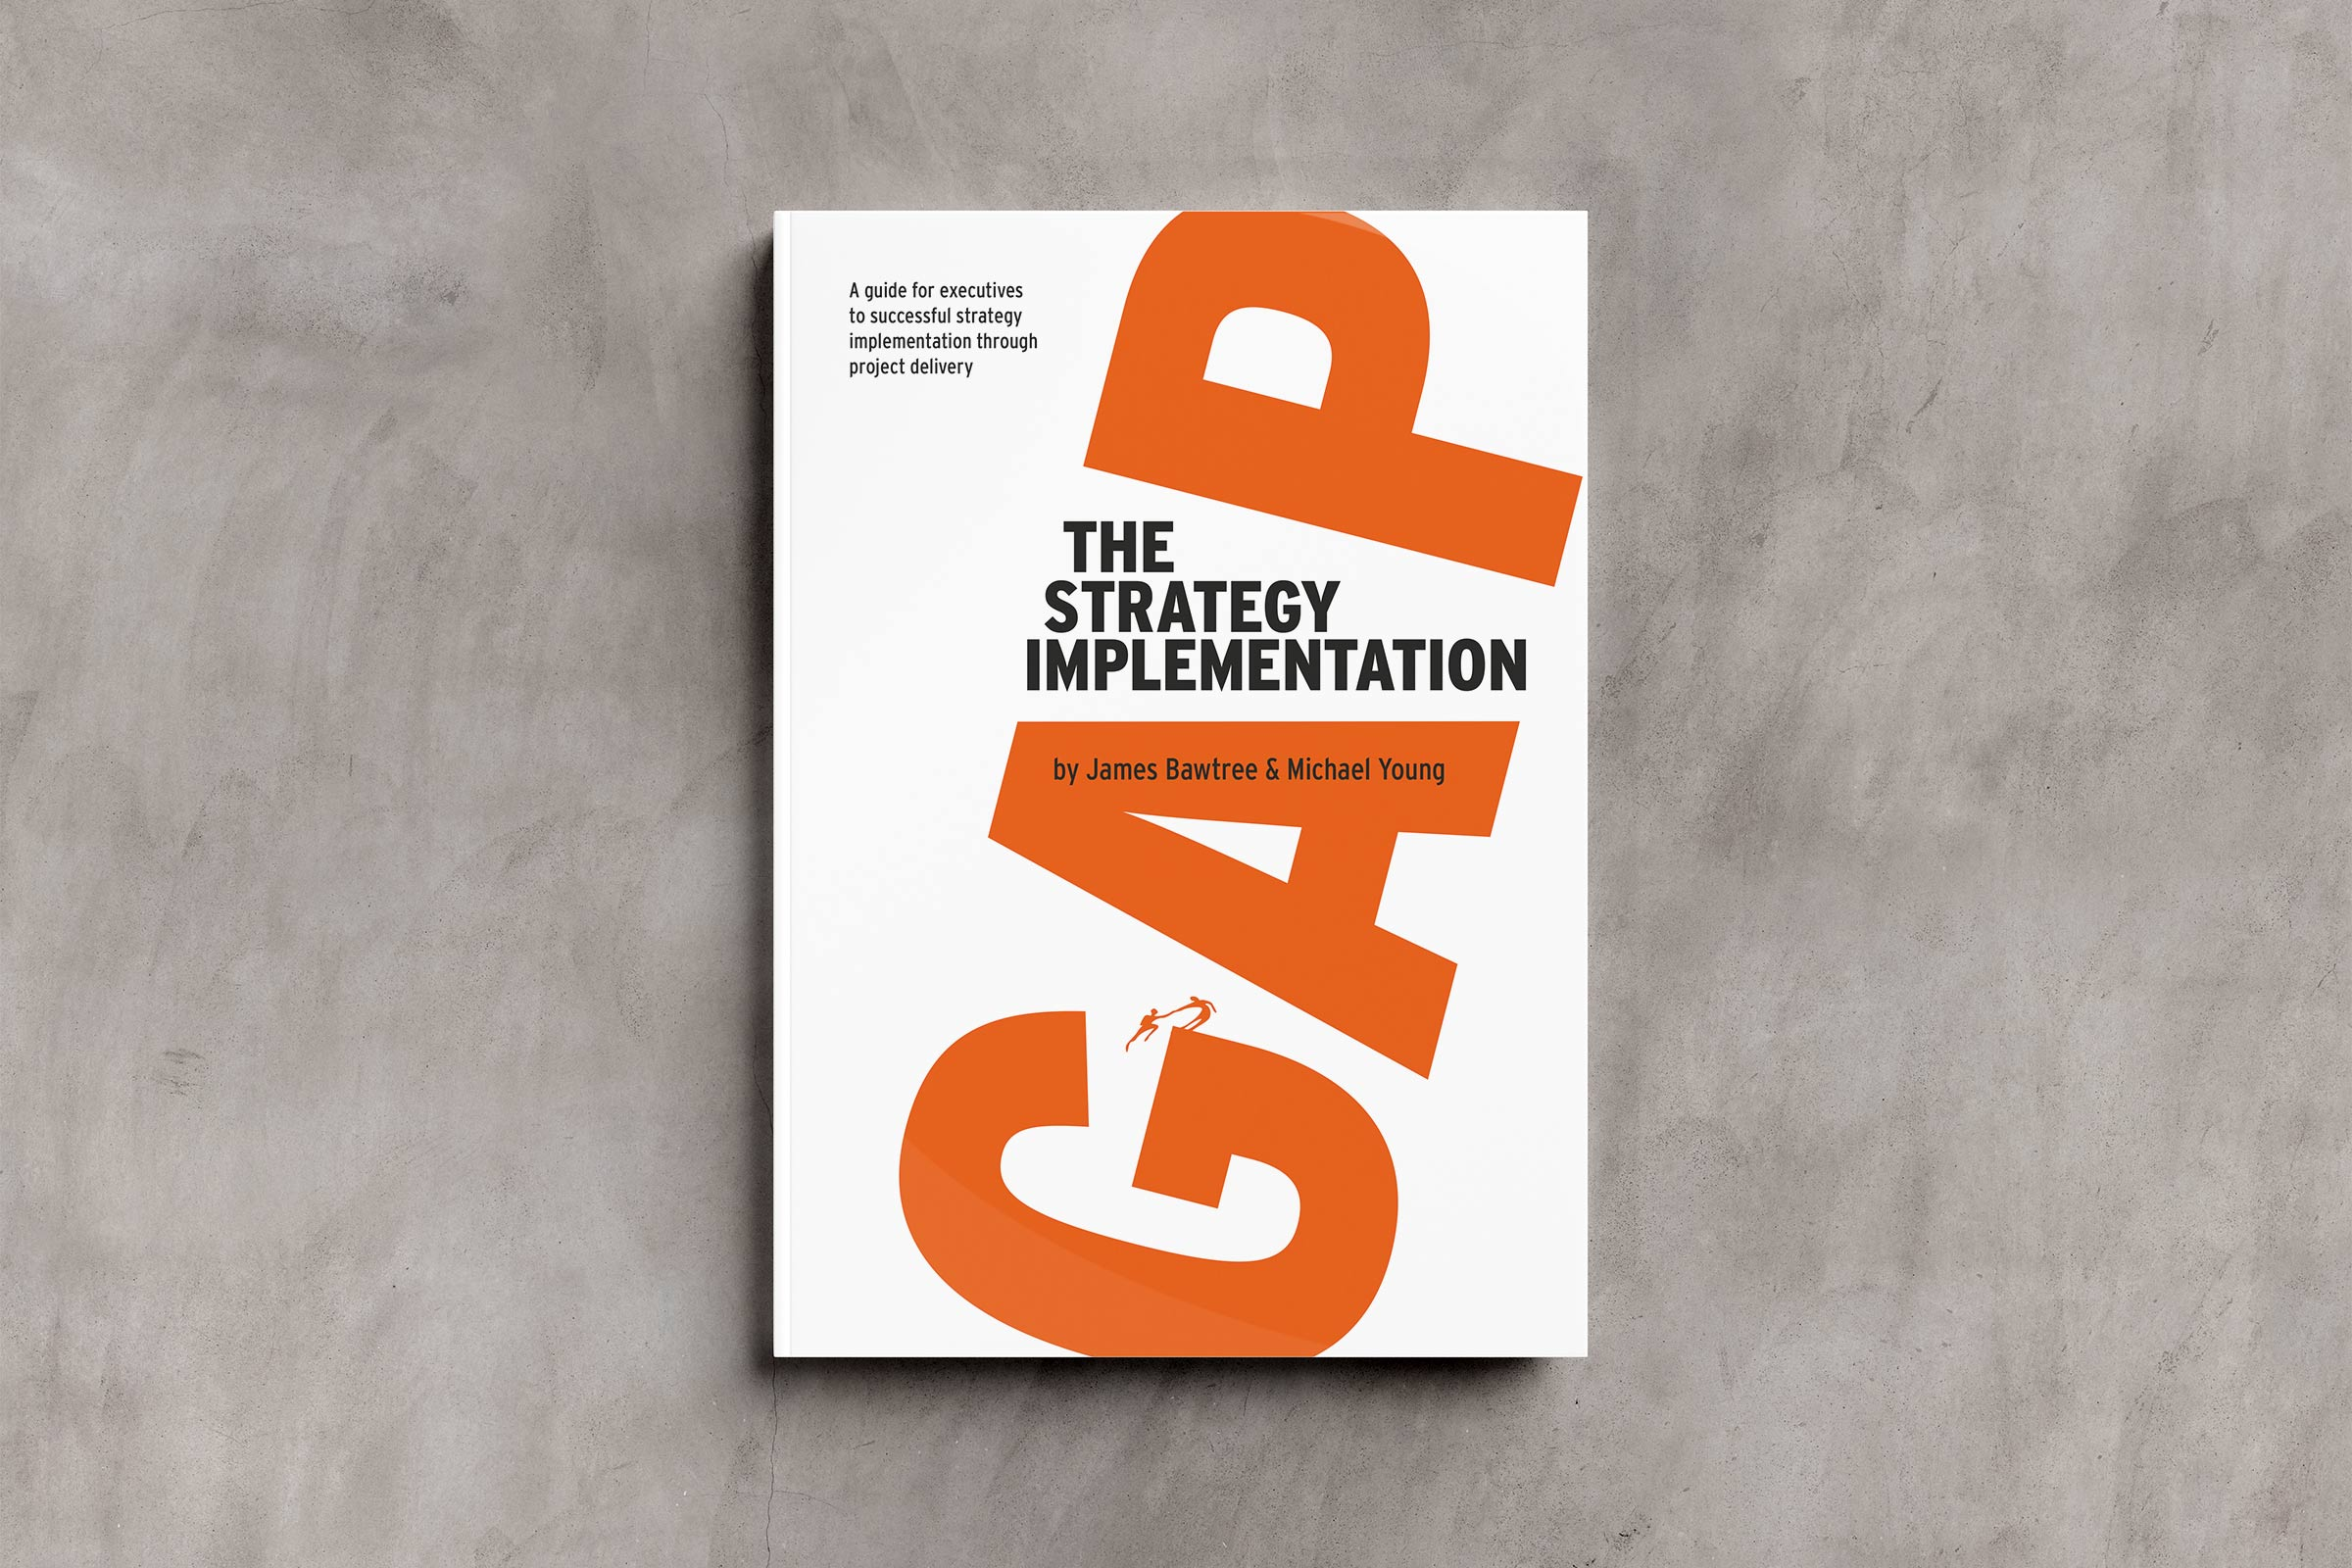 The Strategy Implementation Gap Publication cover in white, orange and a little black.